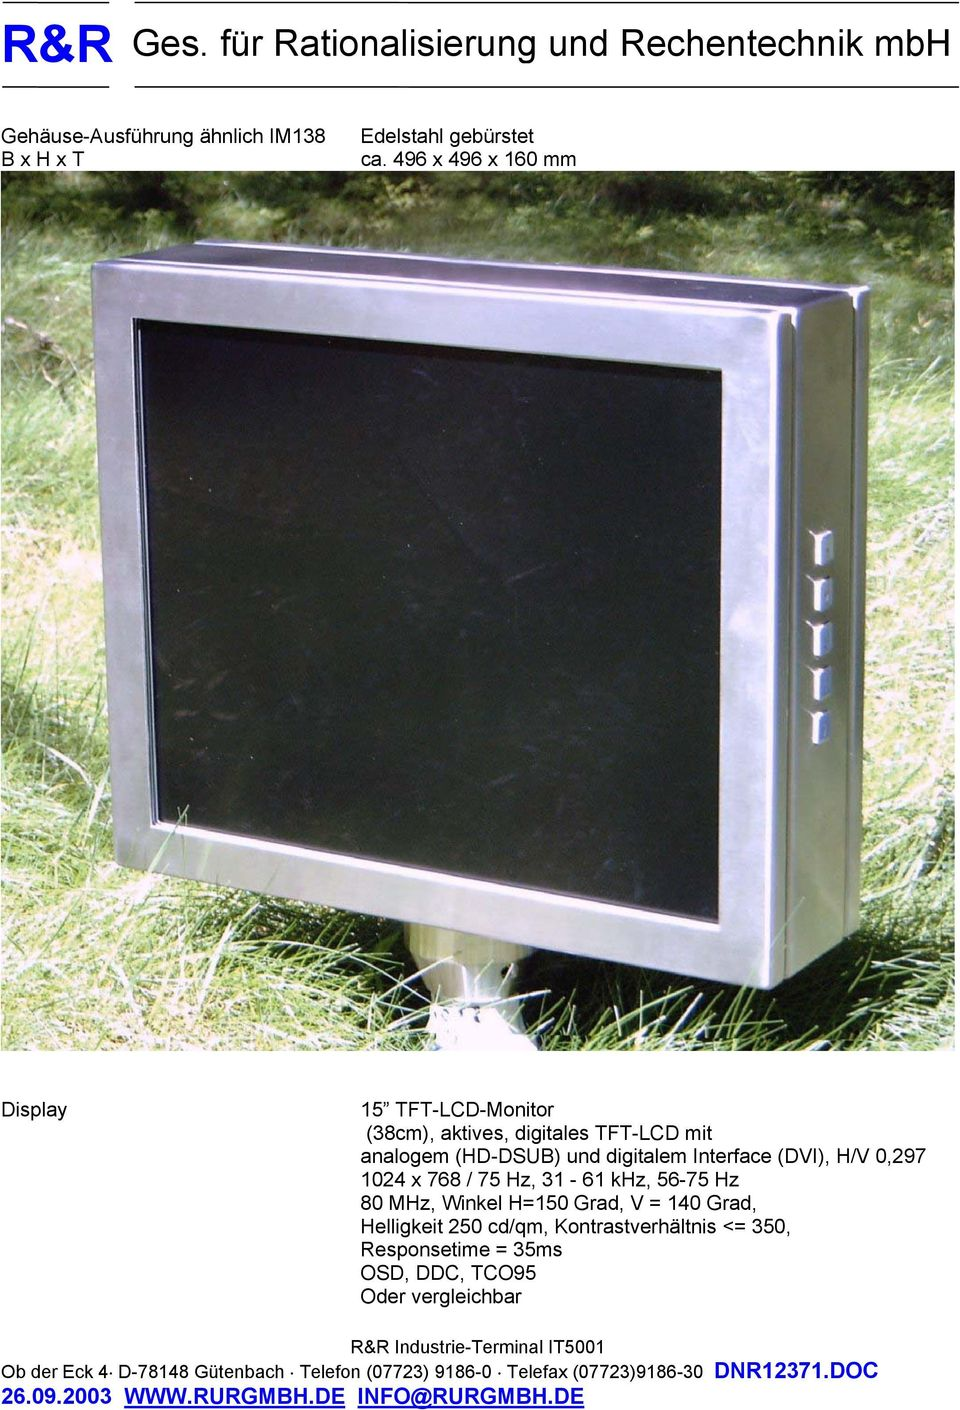 (HD-DSUB) und digitalem Interface (DVI), H/V 0,297 1024 x 768 / 75 Hz, 31-61 khz, 56-75 Hz 80 MHz,